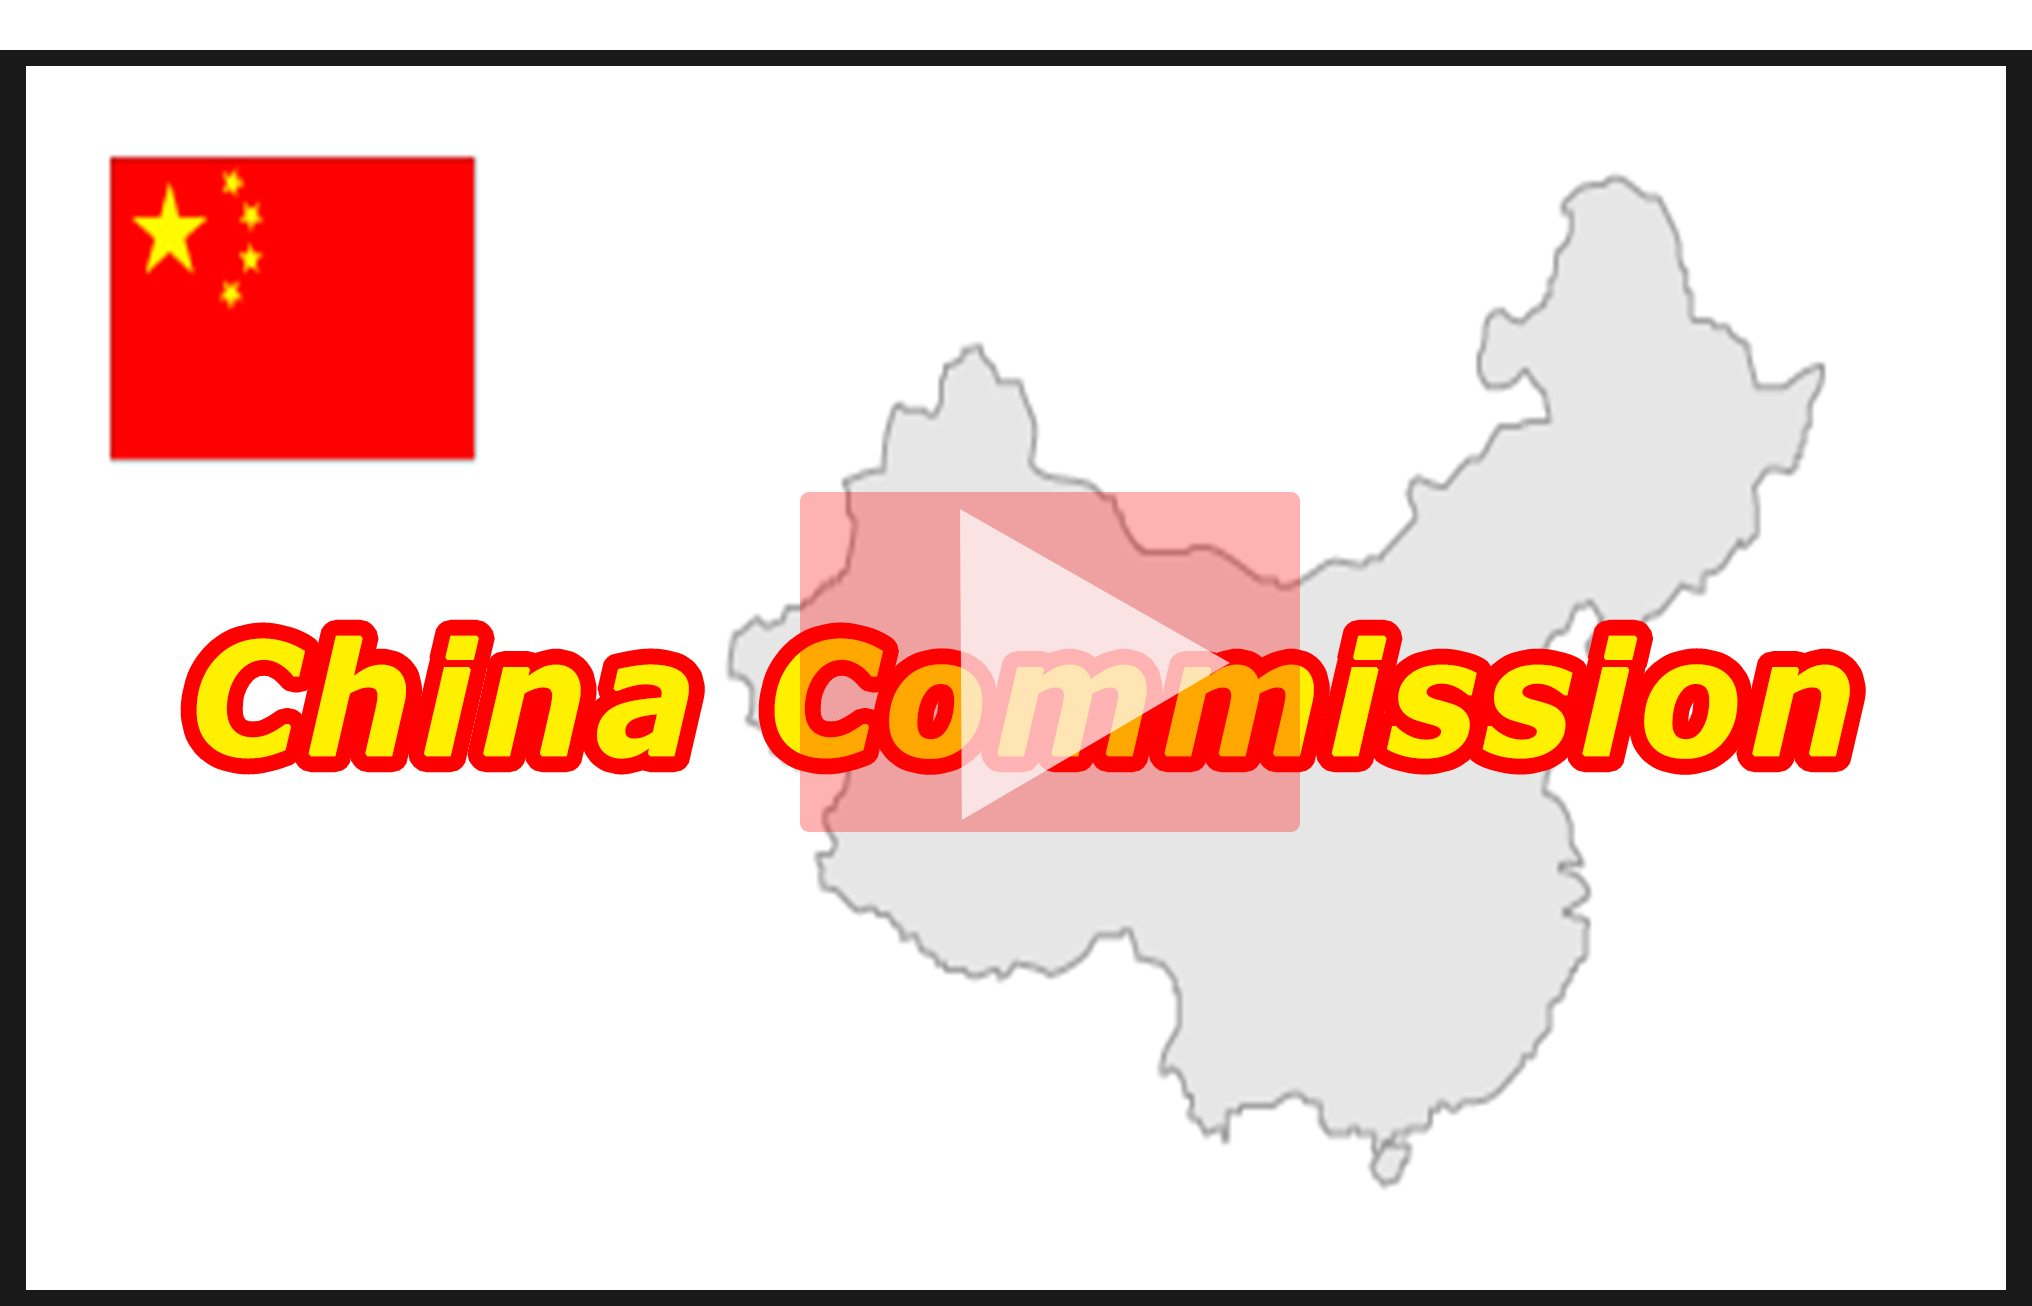 China-commission